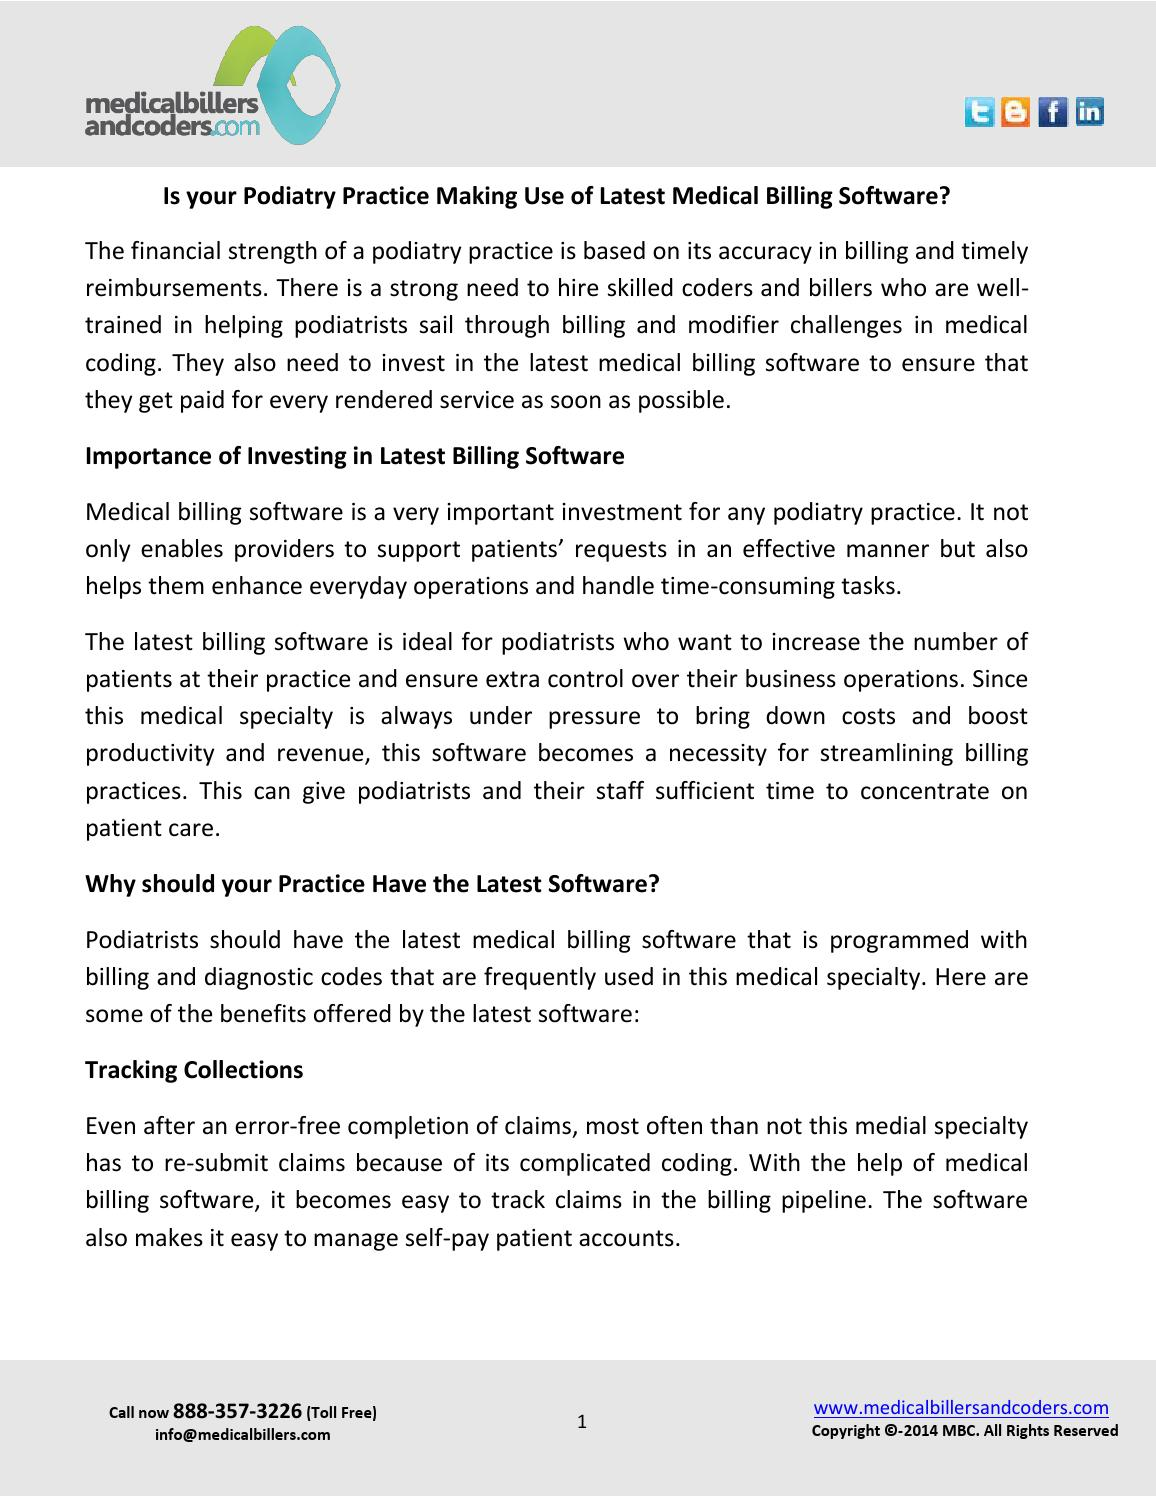 Is your podiatry practice making use of latest medical billing software by  Andersen Keen - issuu